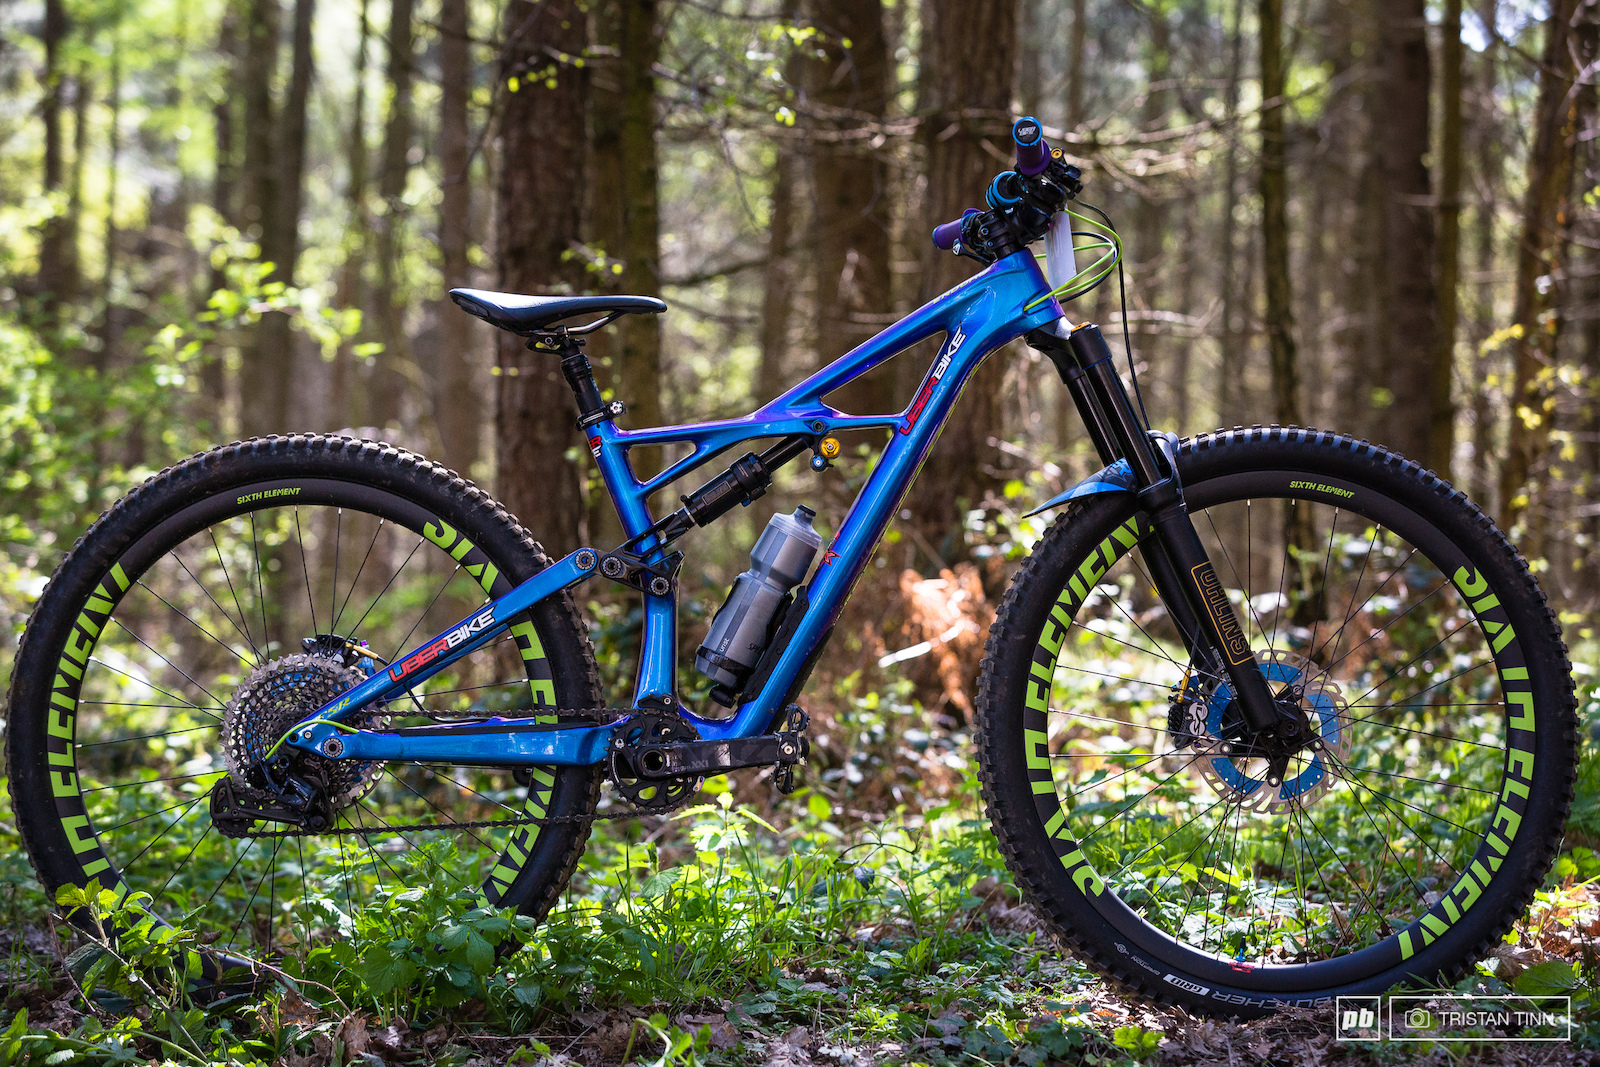 Abigale Lawton s tricked out Enduro